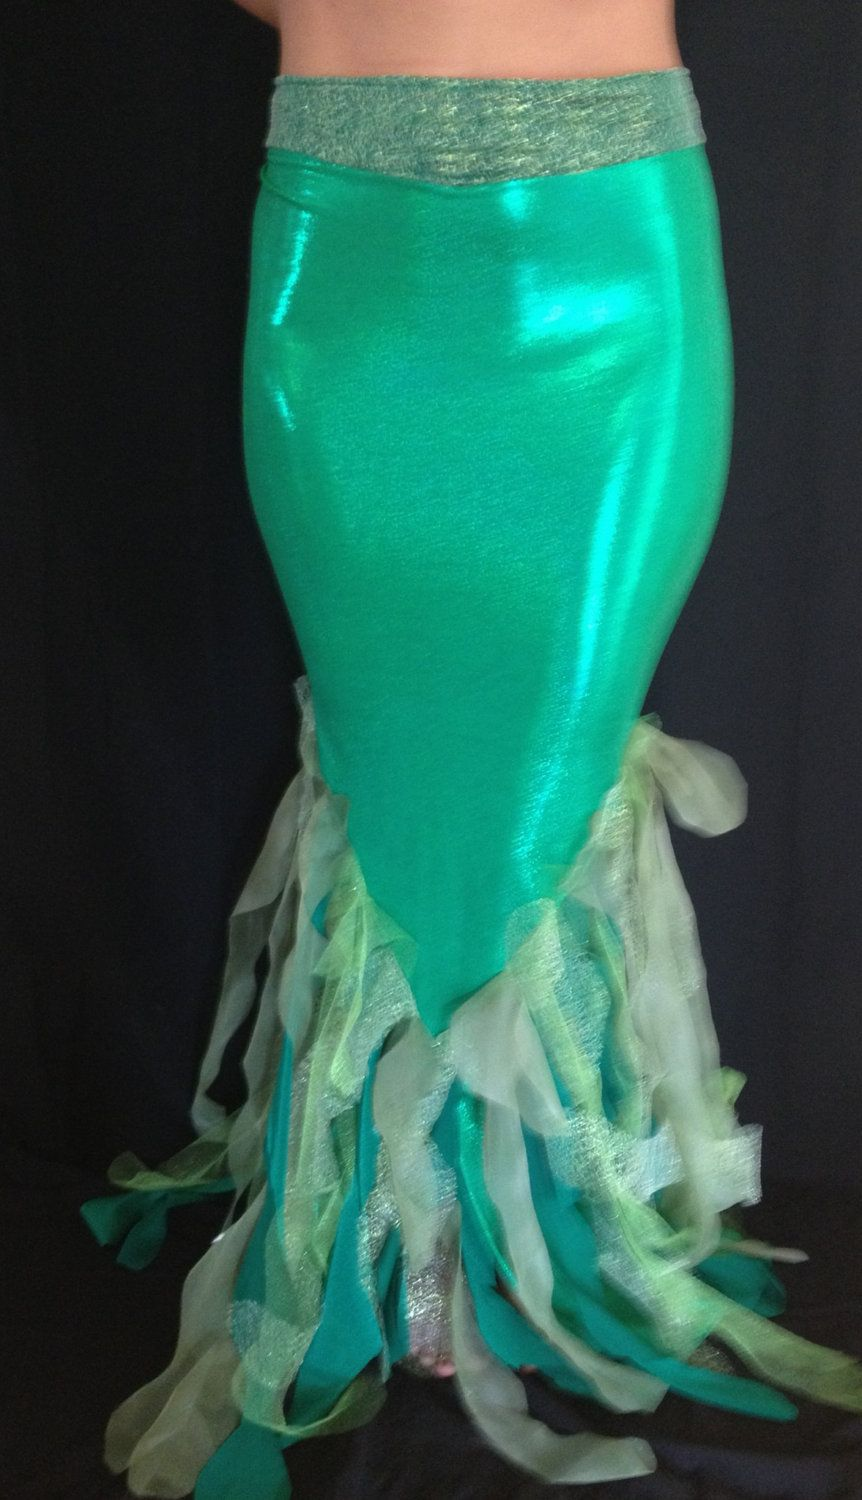 @Michelle Flynn Flynn Yebra for Arley Mermaid tail, walking Ariel tail. @cheryl ng ng Spofford - can you do this for Delaney?